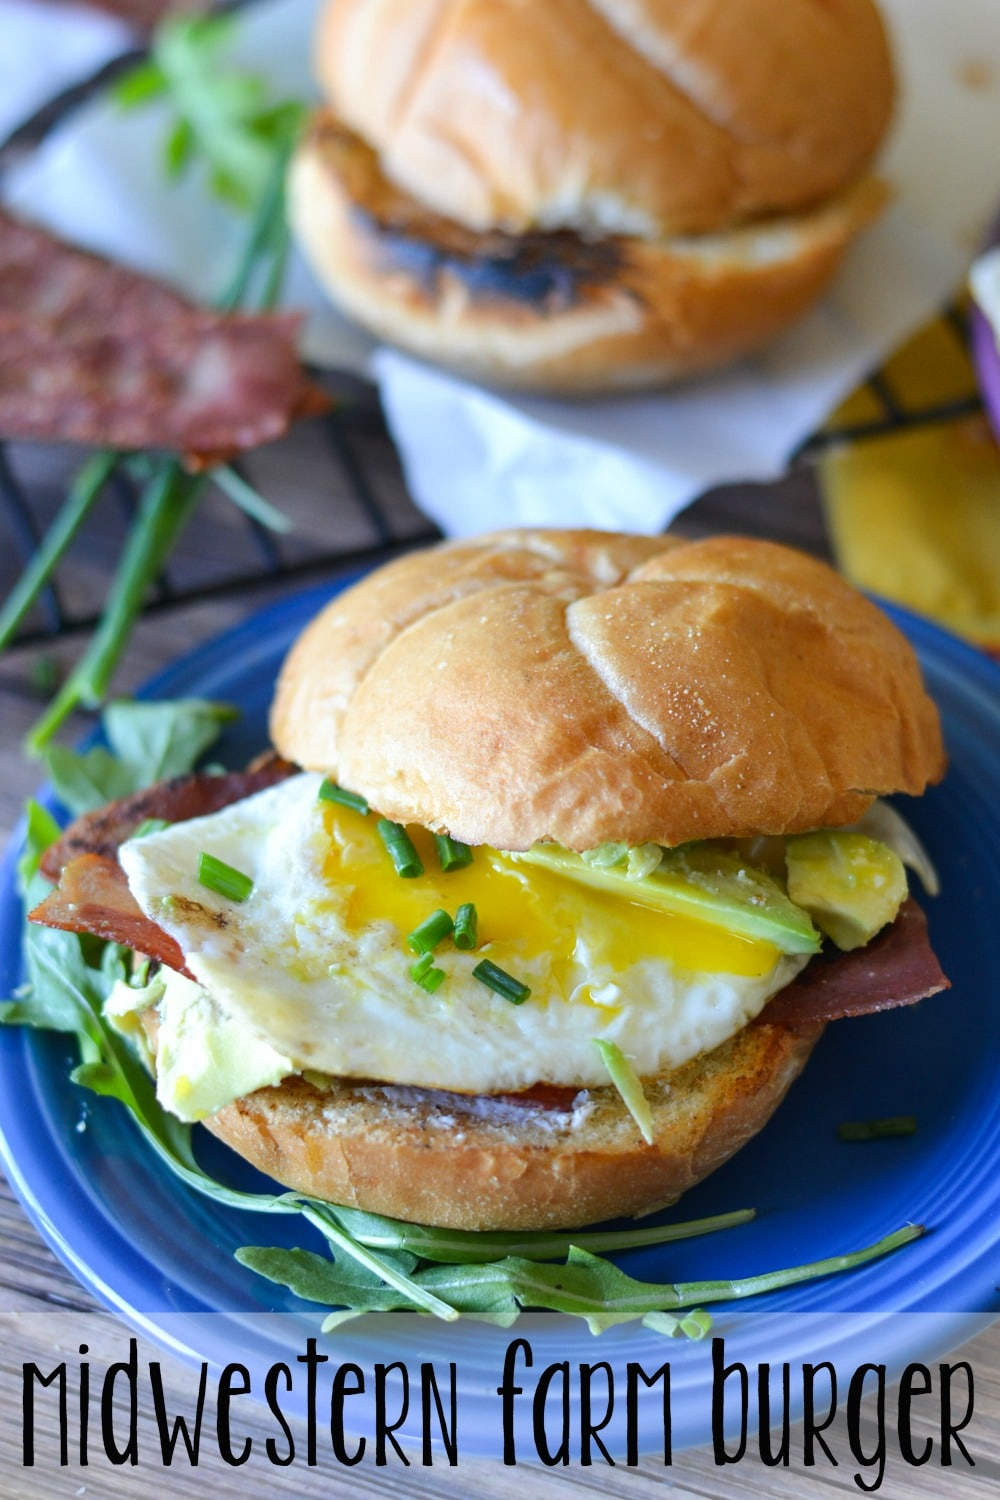 Packed full of fresh flavors, this Midwestern Farm Burger is a delicious way to get your morning off to a great start!